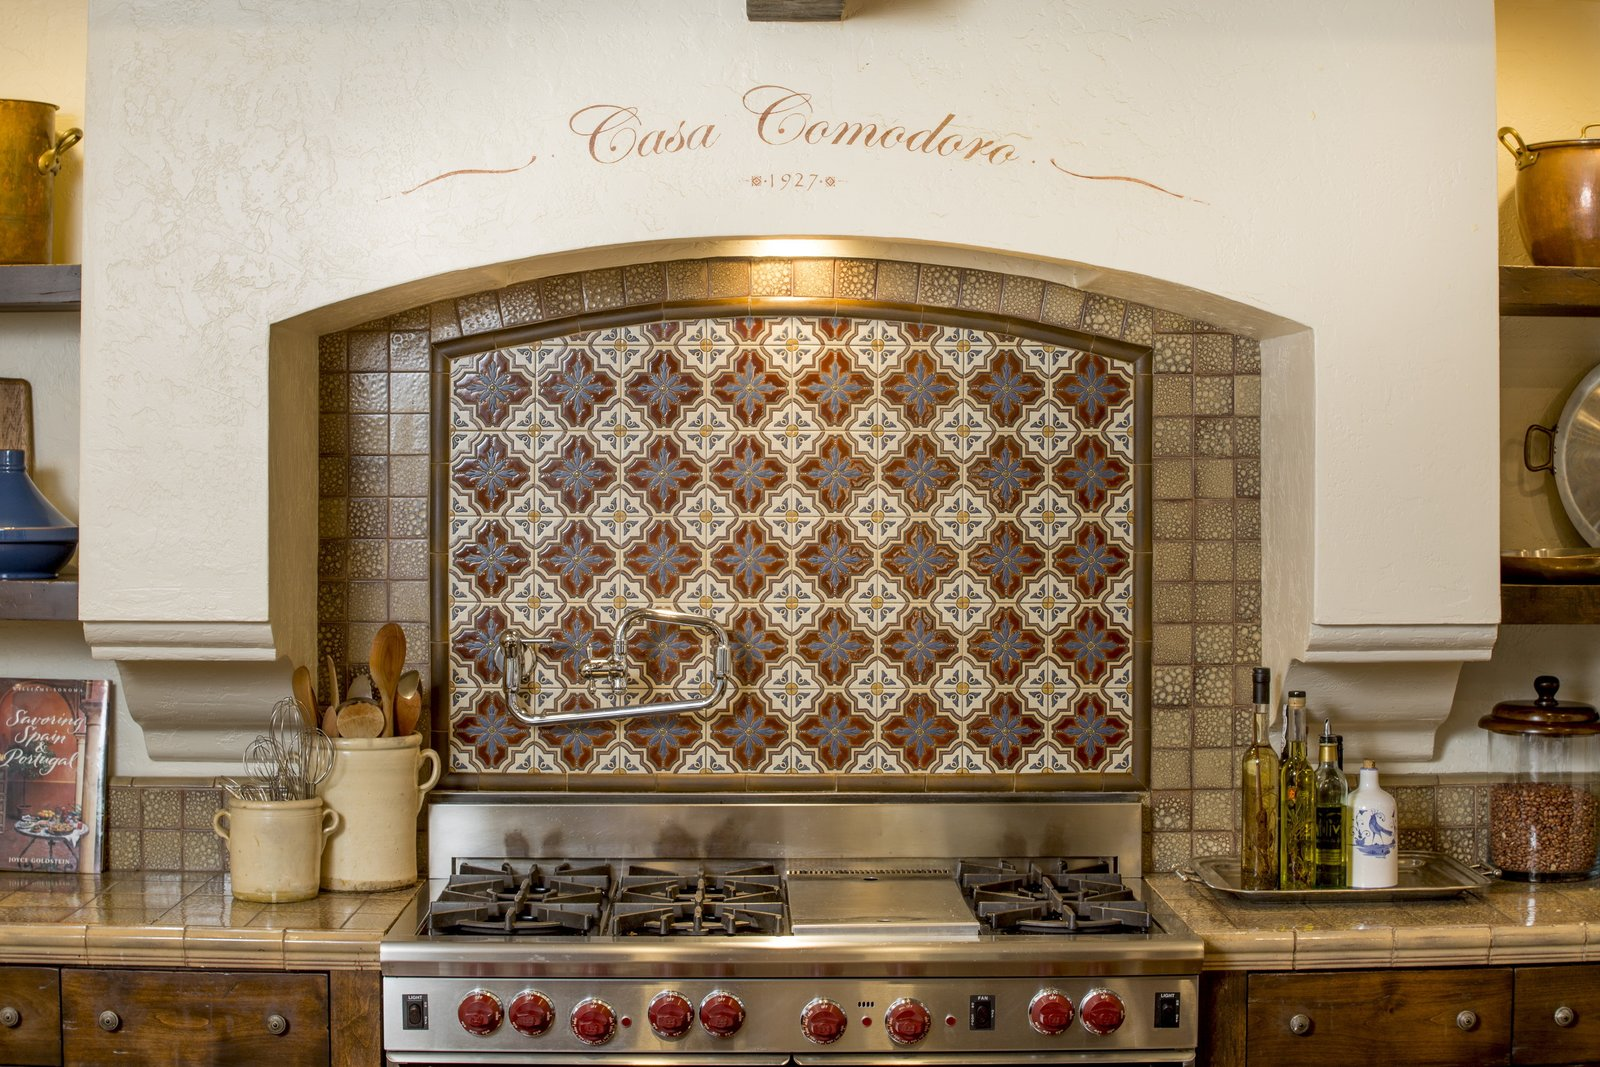 Hand-painted tiles make for a charming backsplash. The kitchen was designed in collaboration with Fleetwood Joiner and & Associates to closely match the style of the home.  Photo 4 of 9 in Just Listed at $4M, This Spanish Colonial Revival in Southern California Promises Resort-Like Living